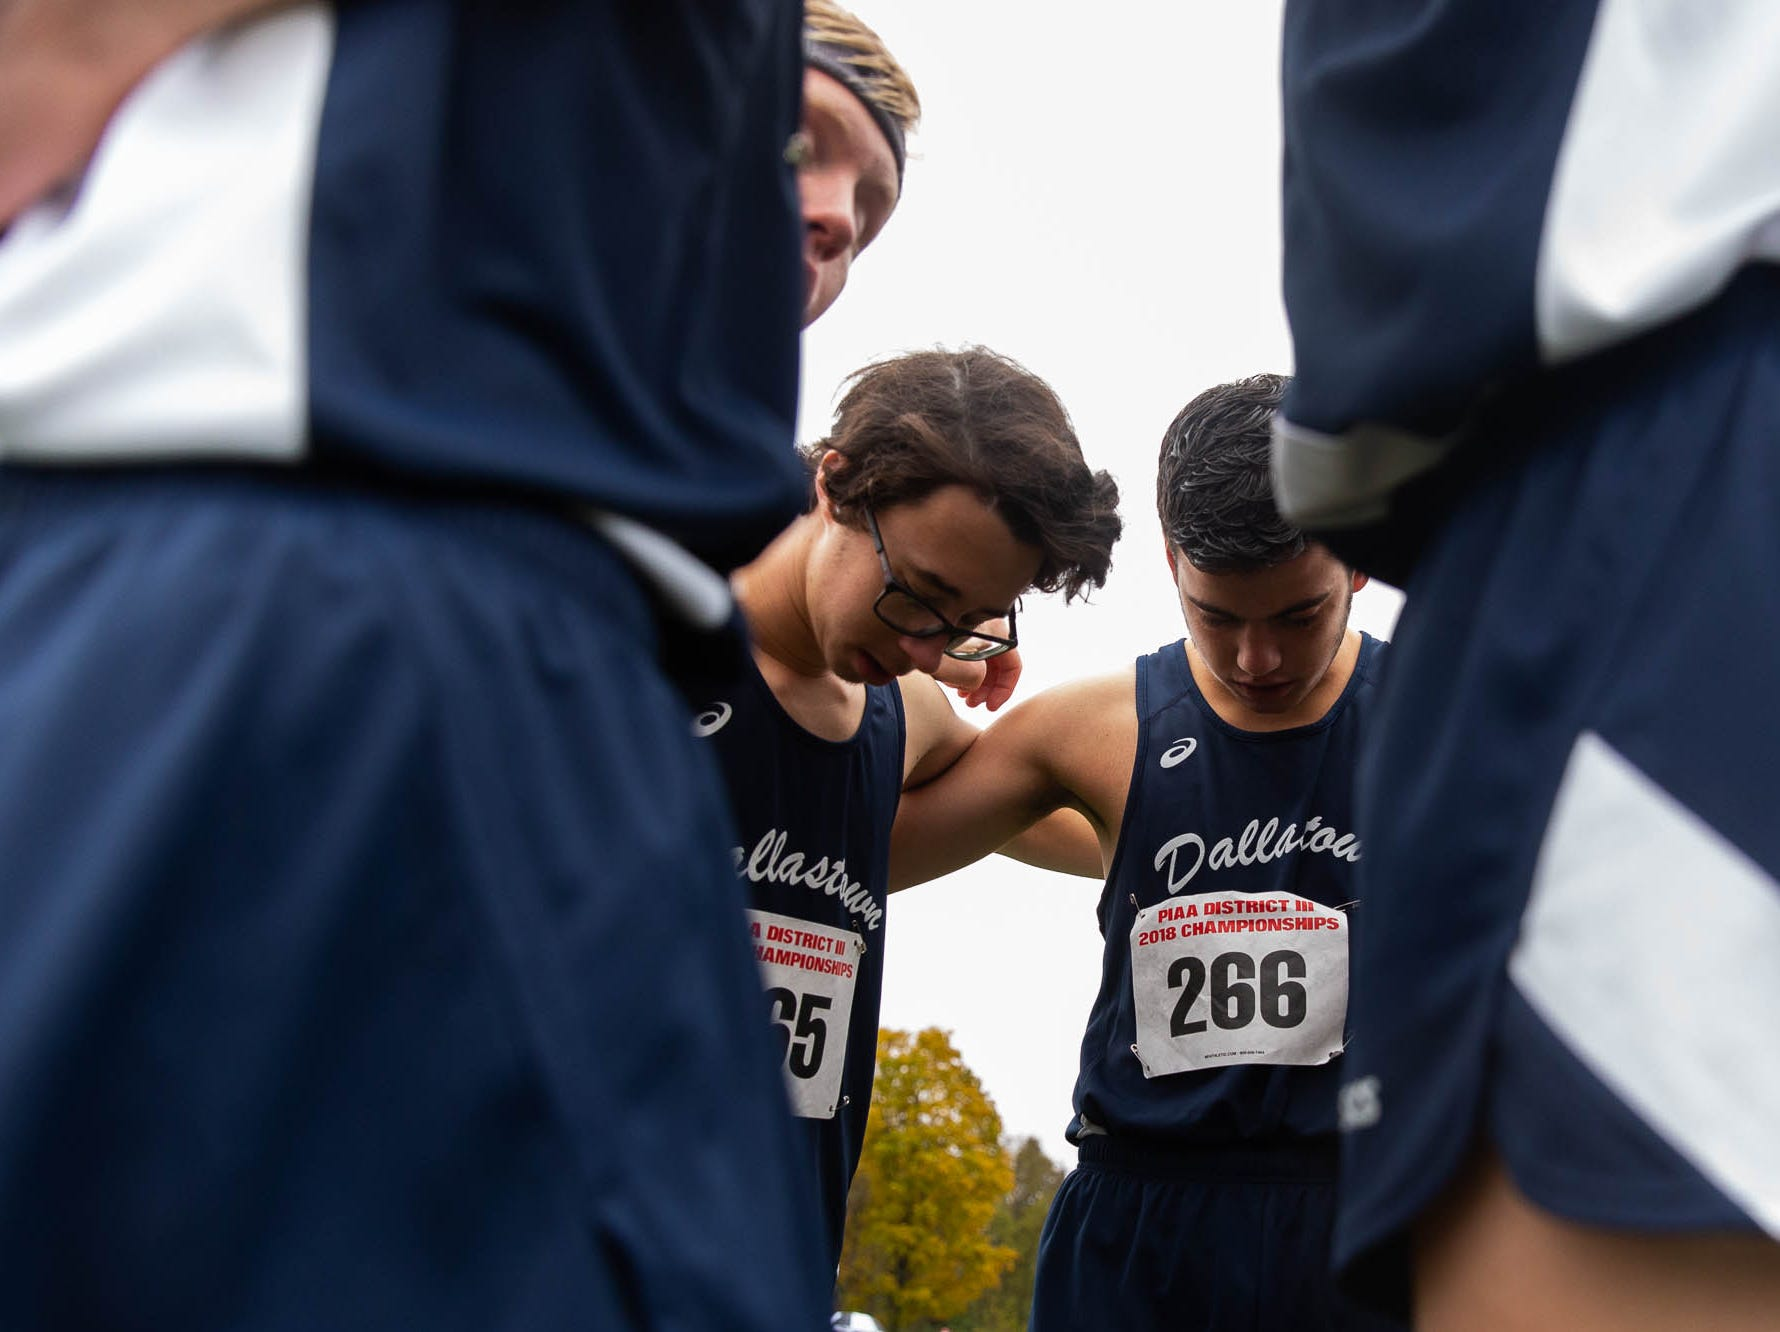 The Dallastown boys team takes a moment before the Boys AAA race during the PIAA District III Cross Country Championship, Saturday, Oct. 27, 2018, at Big Spring High School in Newville.